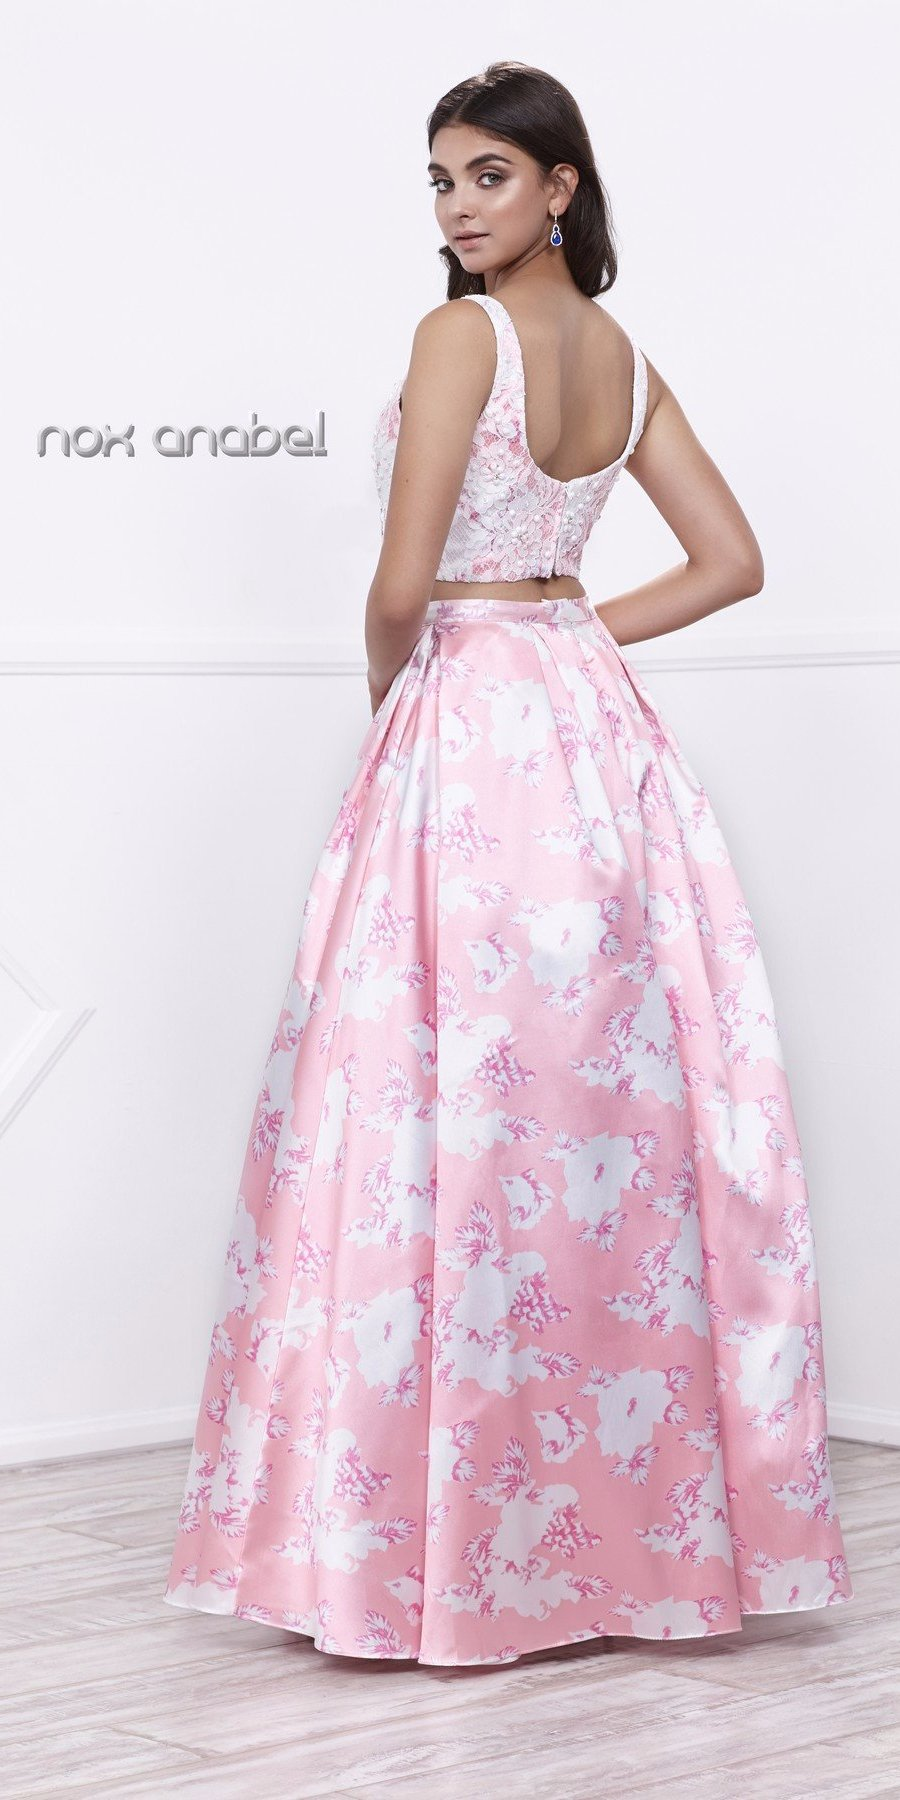 3d6533685a24a Lace Top Satin Floral Printed Skirt Two-Piece Prom Dress Long Pink